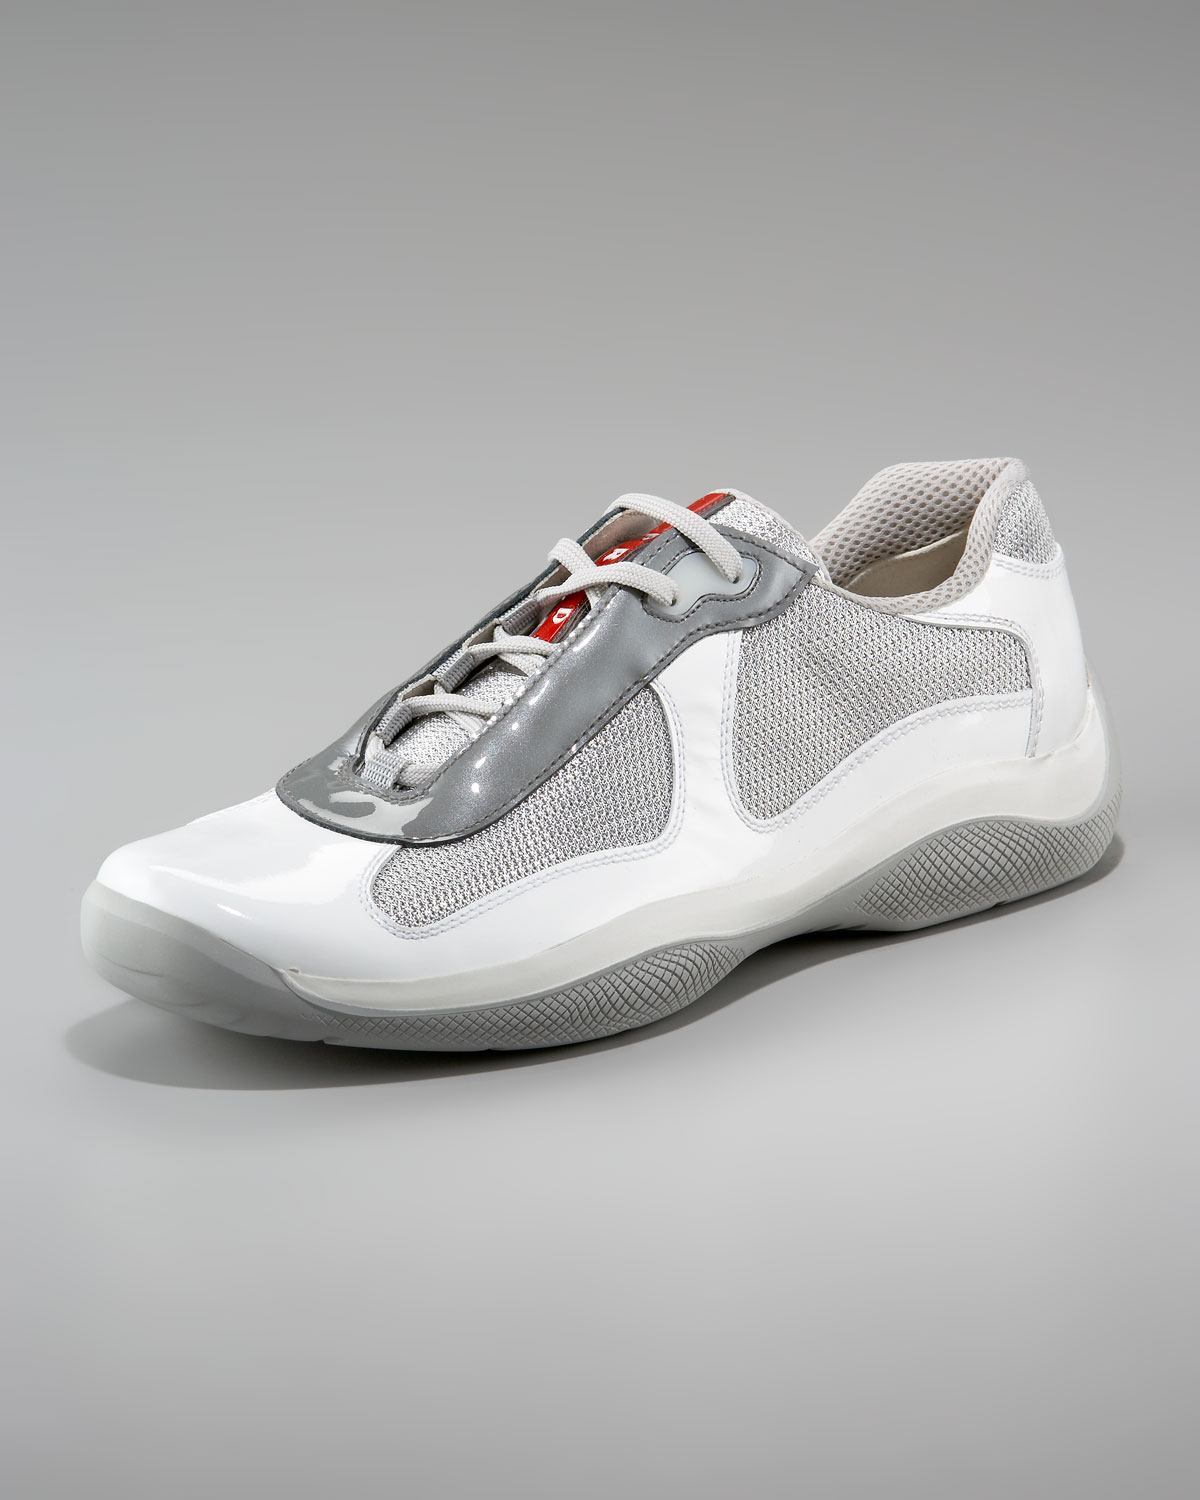 Prada Americas Cup Sneaker White In White For Men Lyst